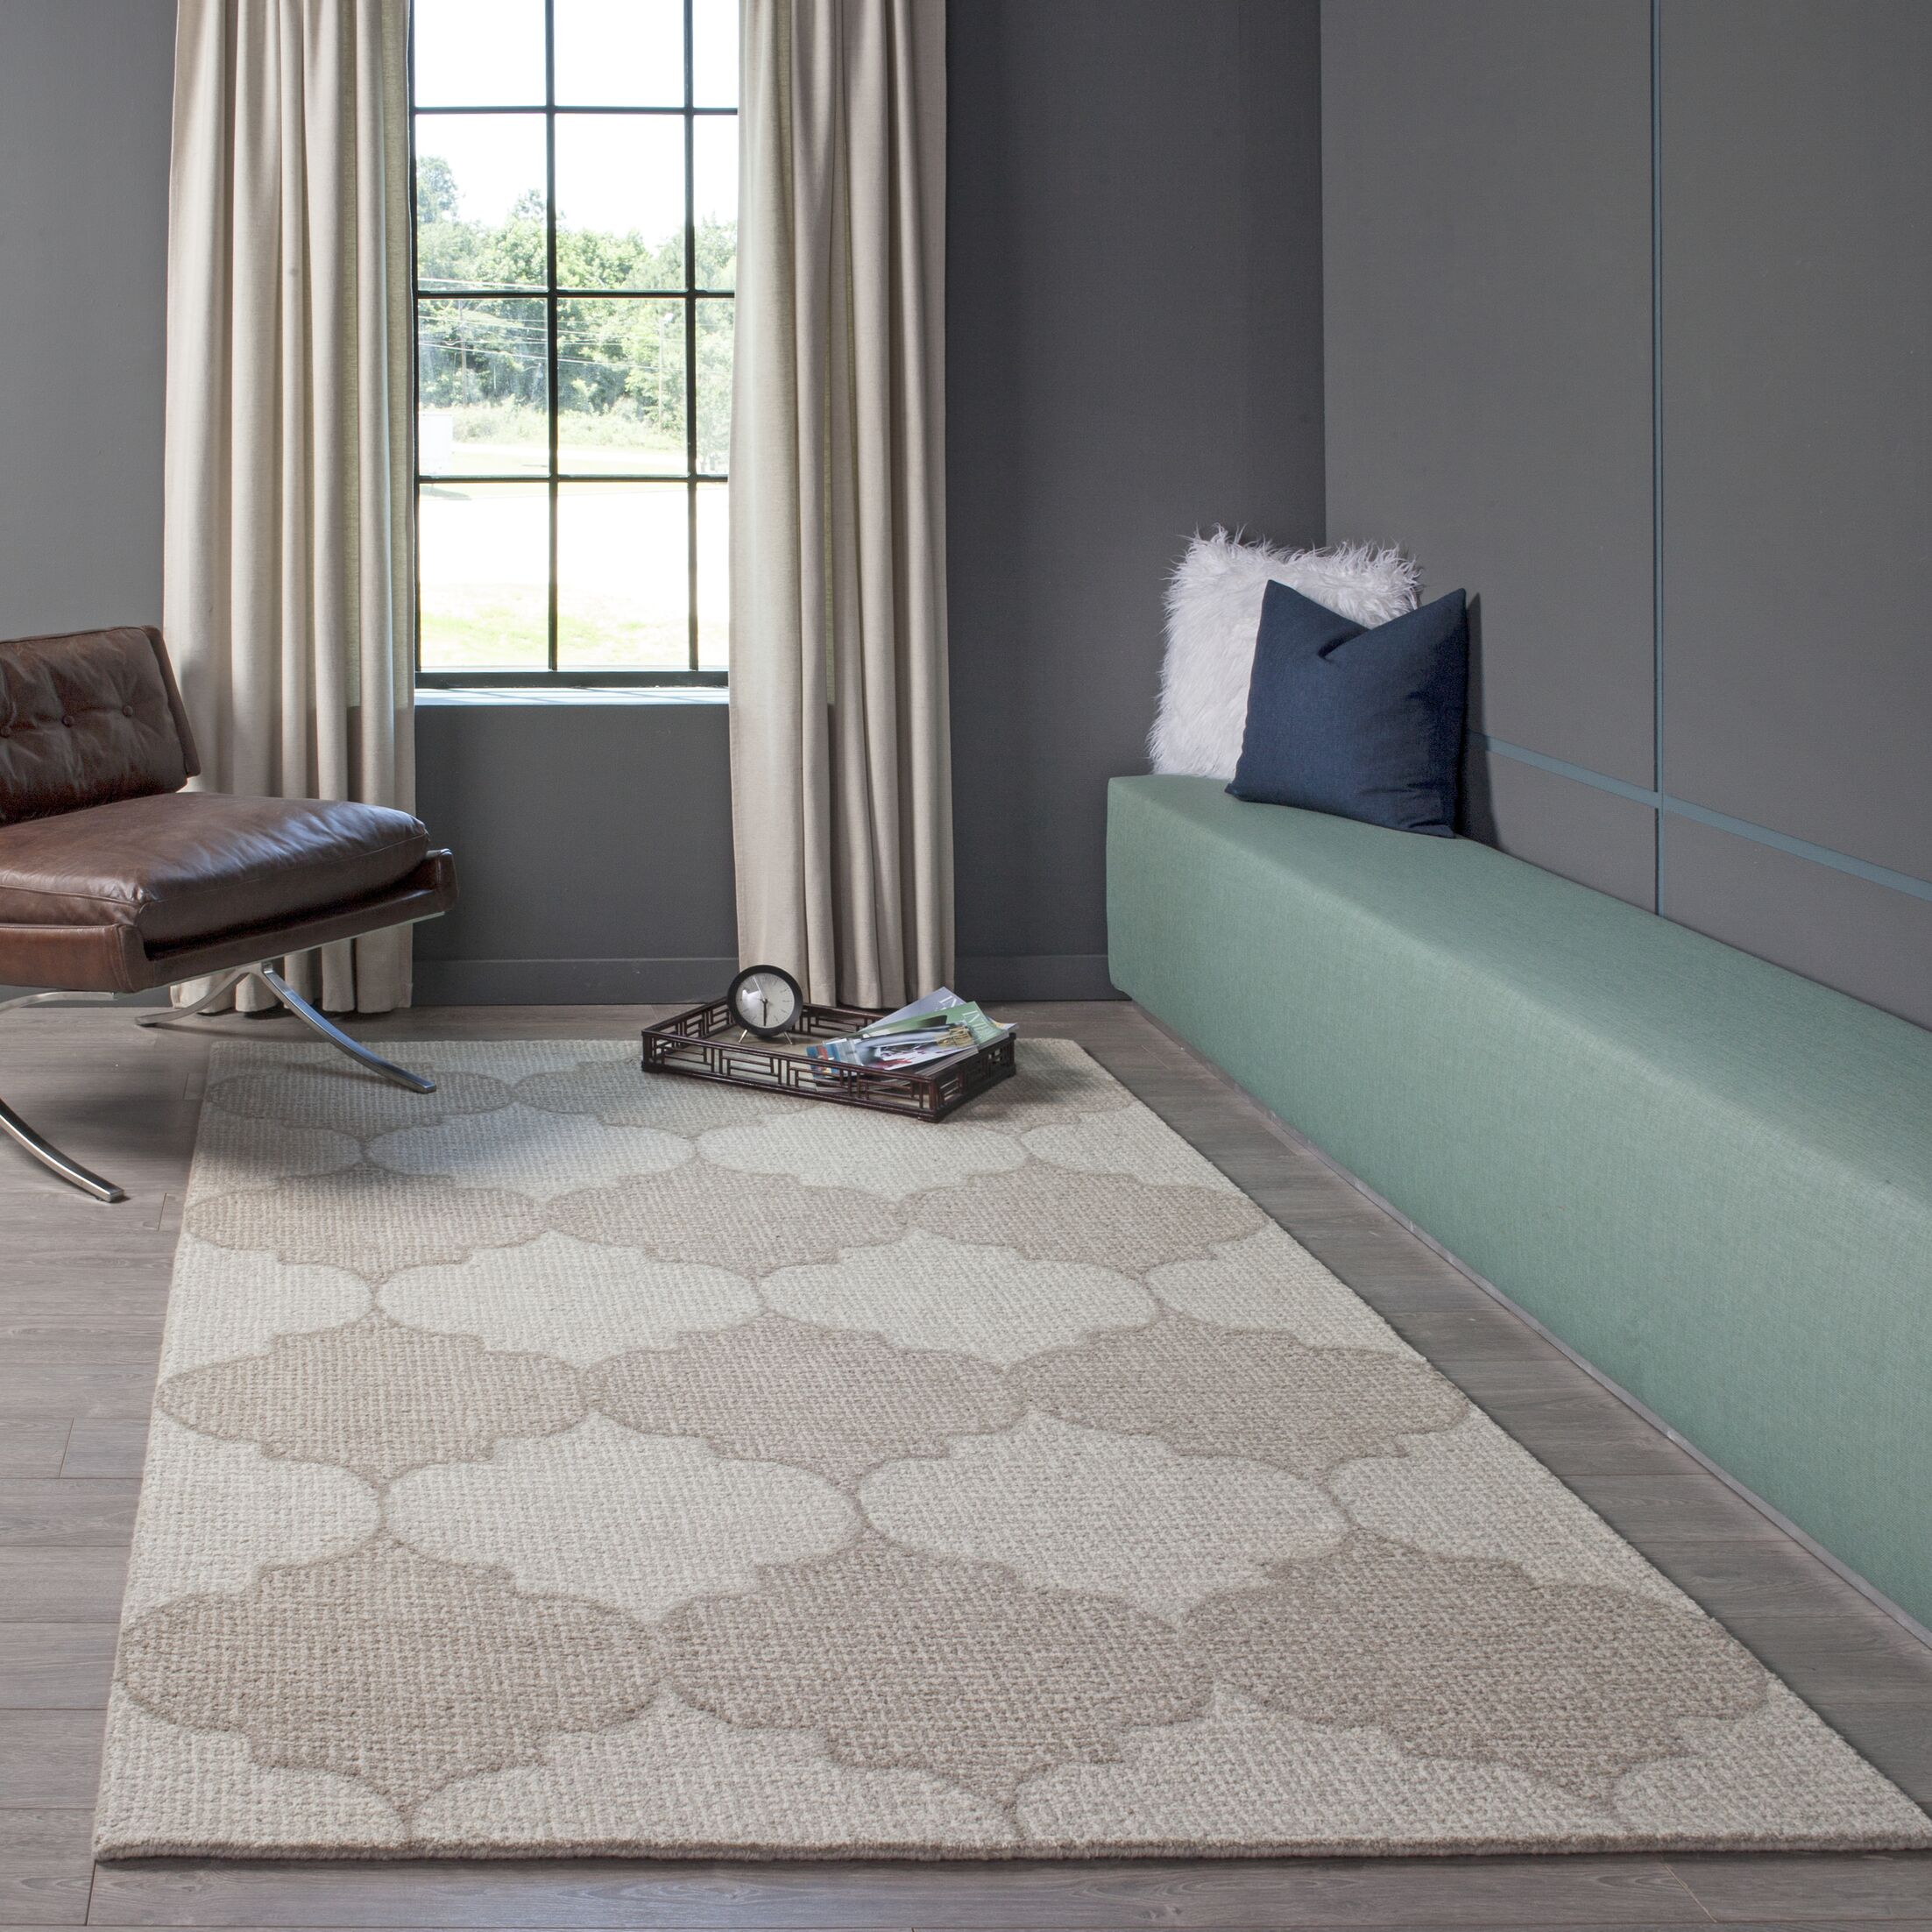 McCollum Hand-Tufted Wool Beige Area Rug Rug Size: Rectangle 3'6